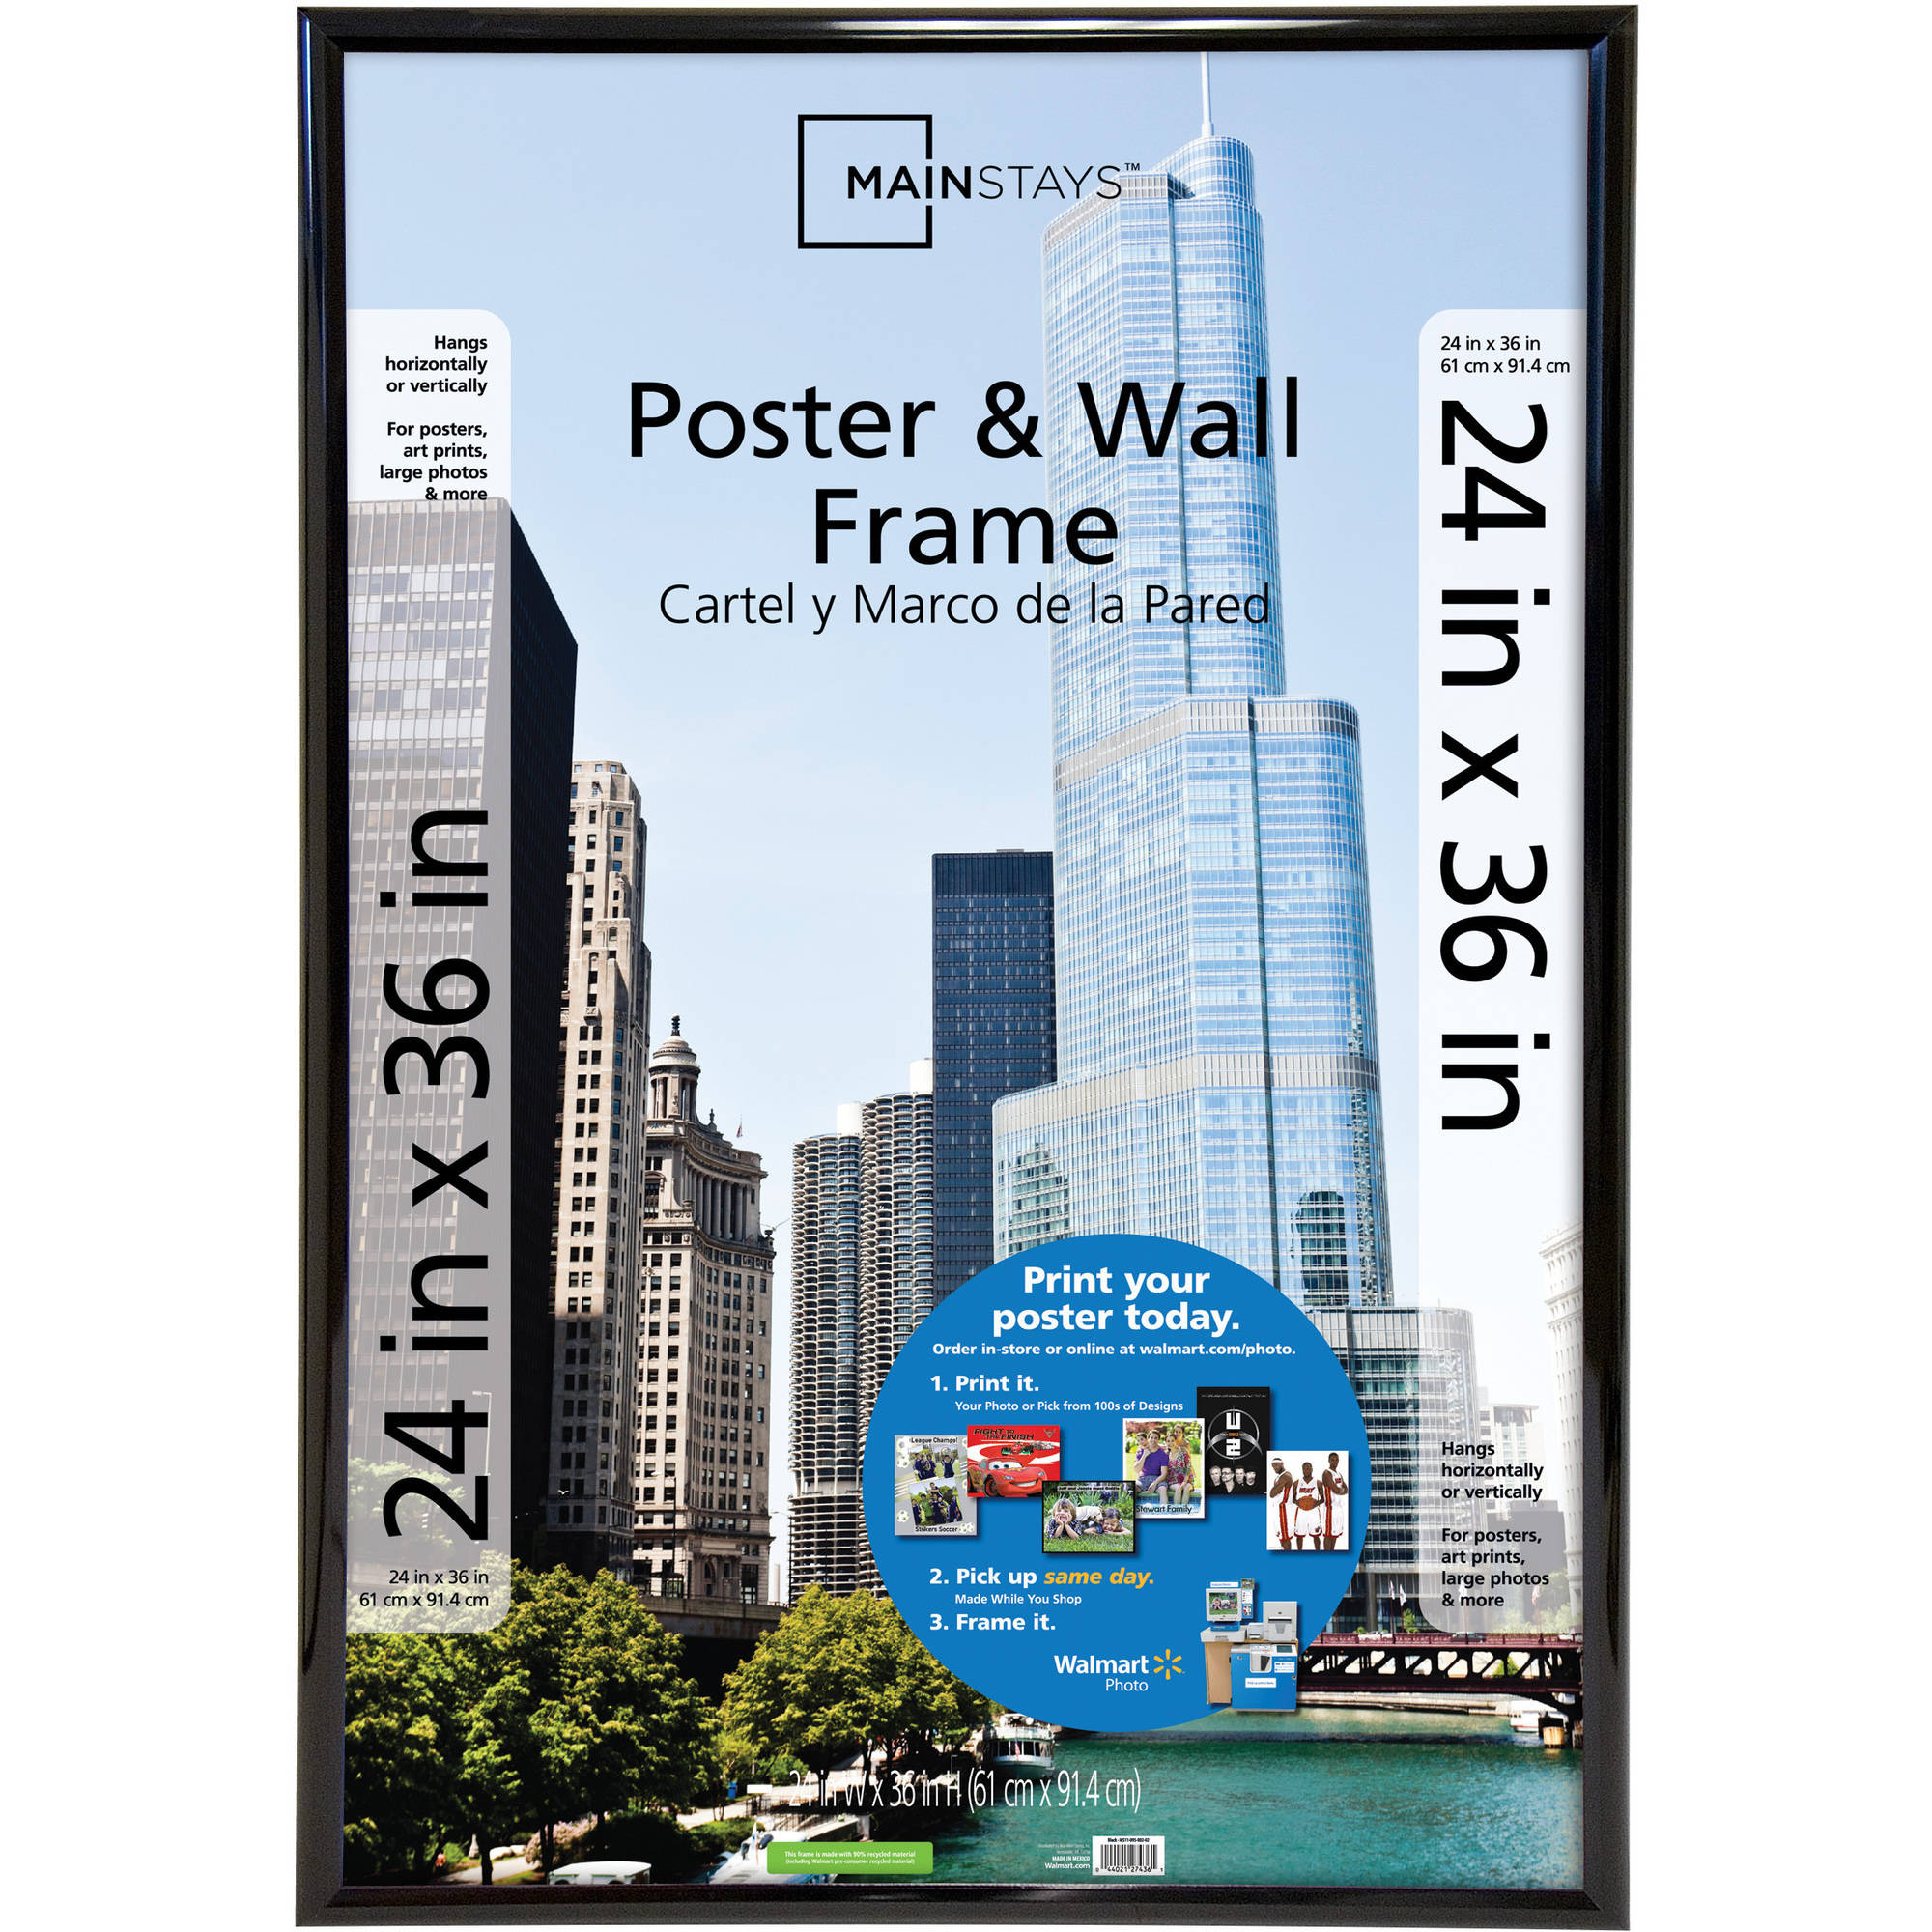 Mainstays 24x36 trendsetter poster and picture frame black mainstays 24x36 trendsetter poster and picture frame black walmart jeuxipadfo Images